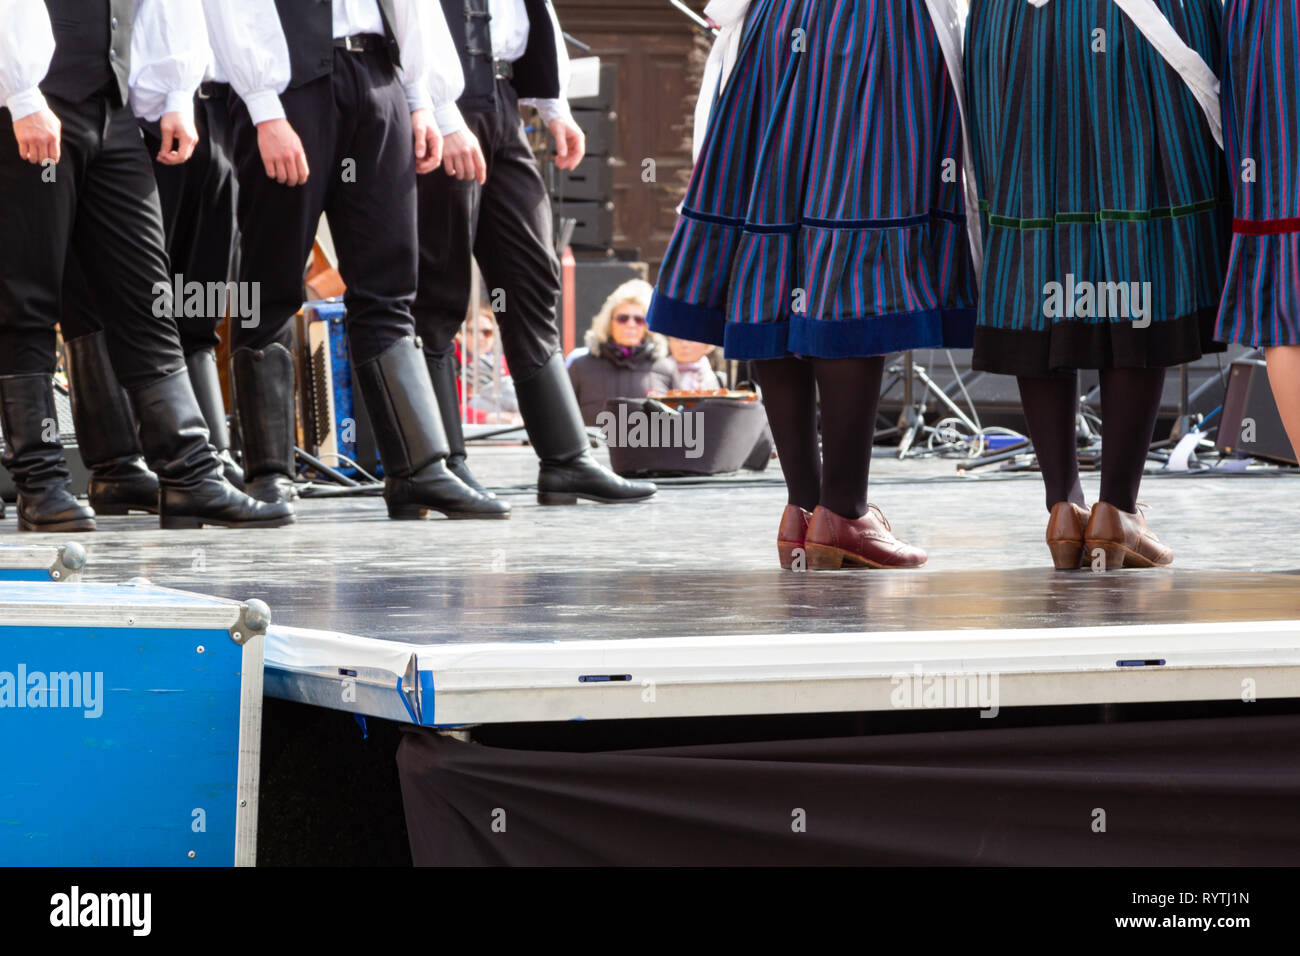 Sopron, Hungary. 15th Mar, 2019. The lower body of male and female folk dancers dressed in traditional costume on stage at Petőfi Square, Sopron, Hungary. Credit: Wahavi/Alamy Live News - Stock Image